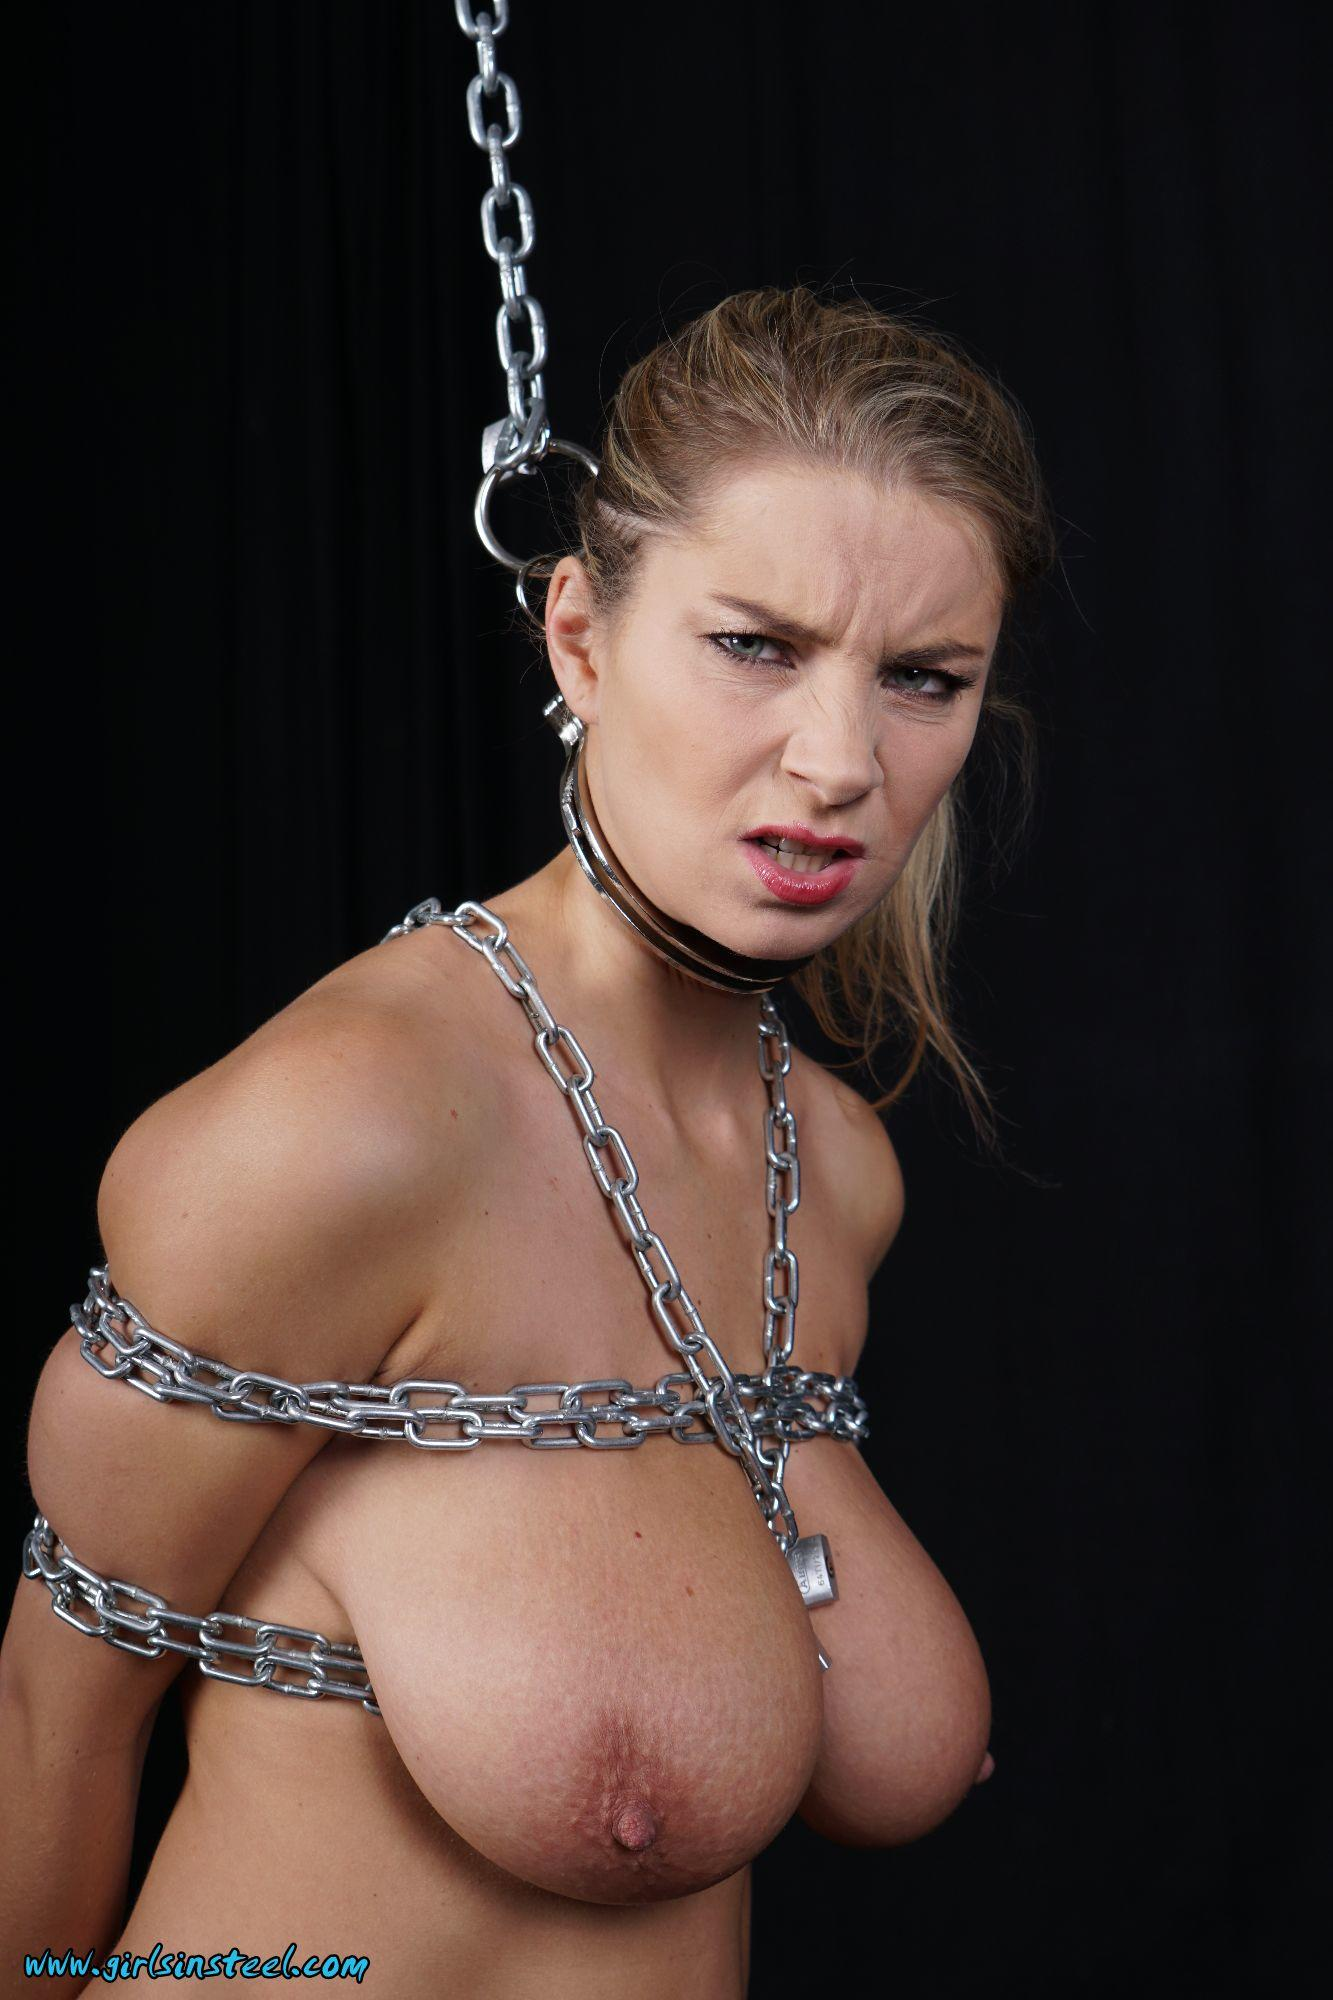 naked babes in chains